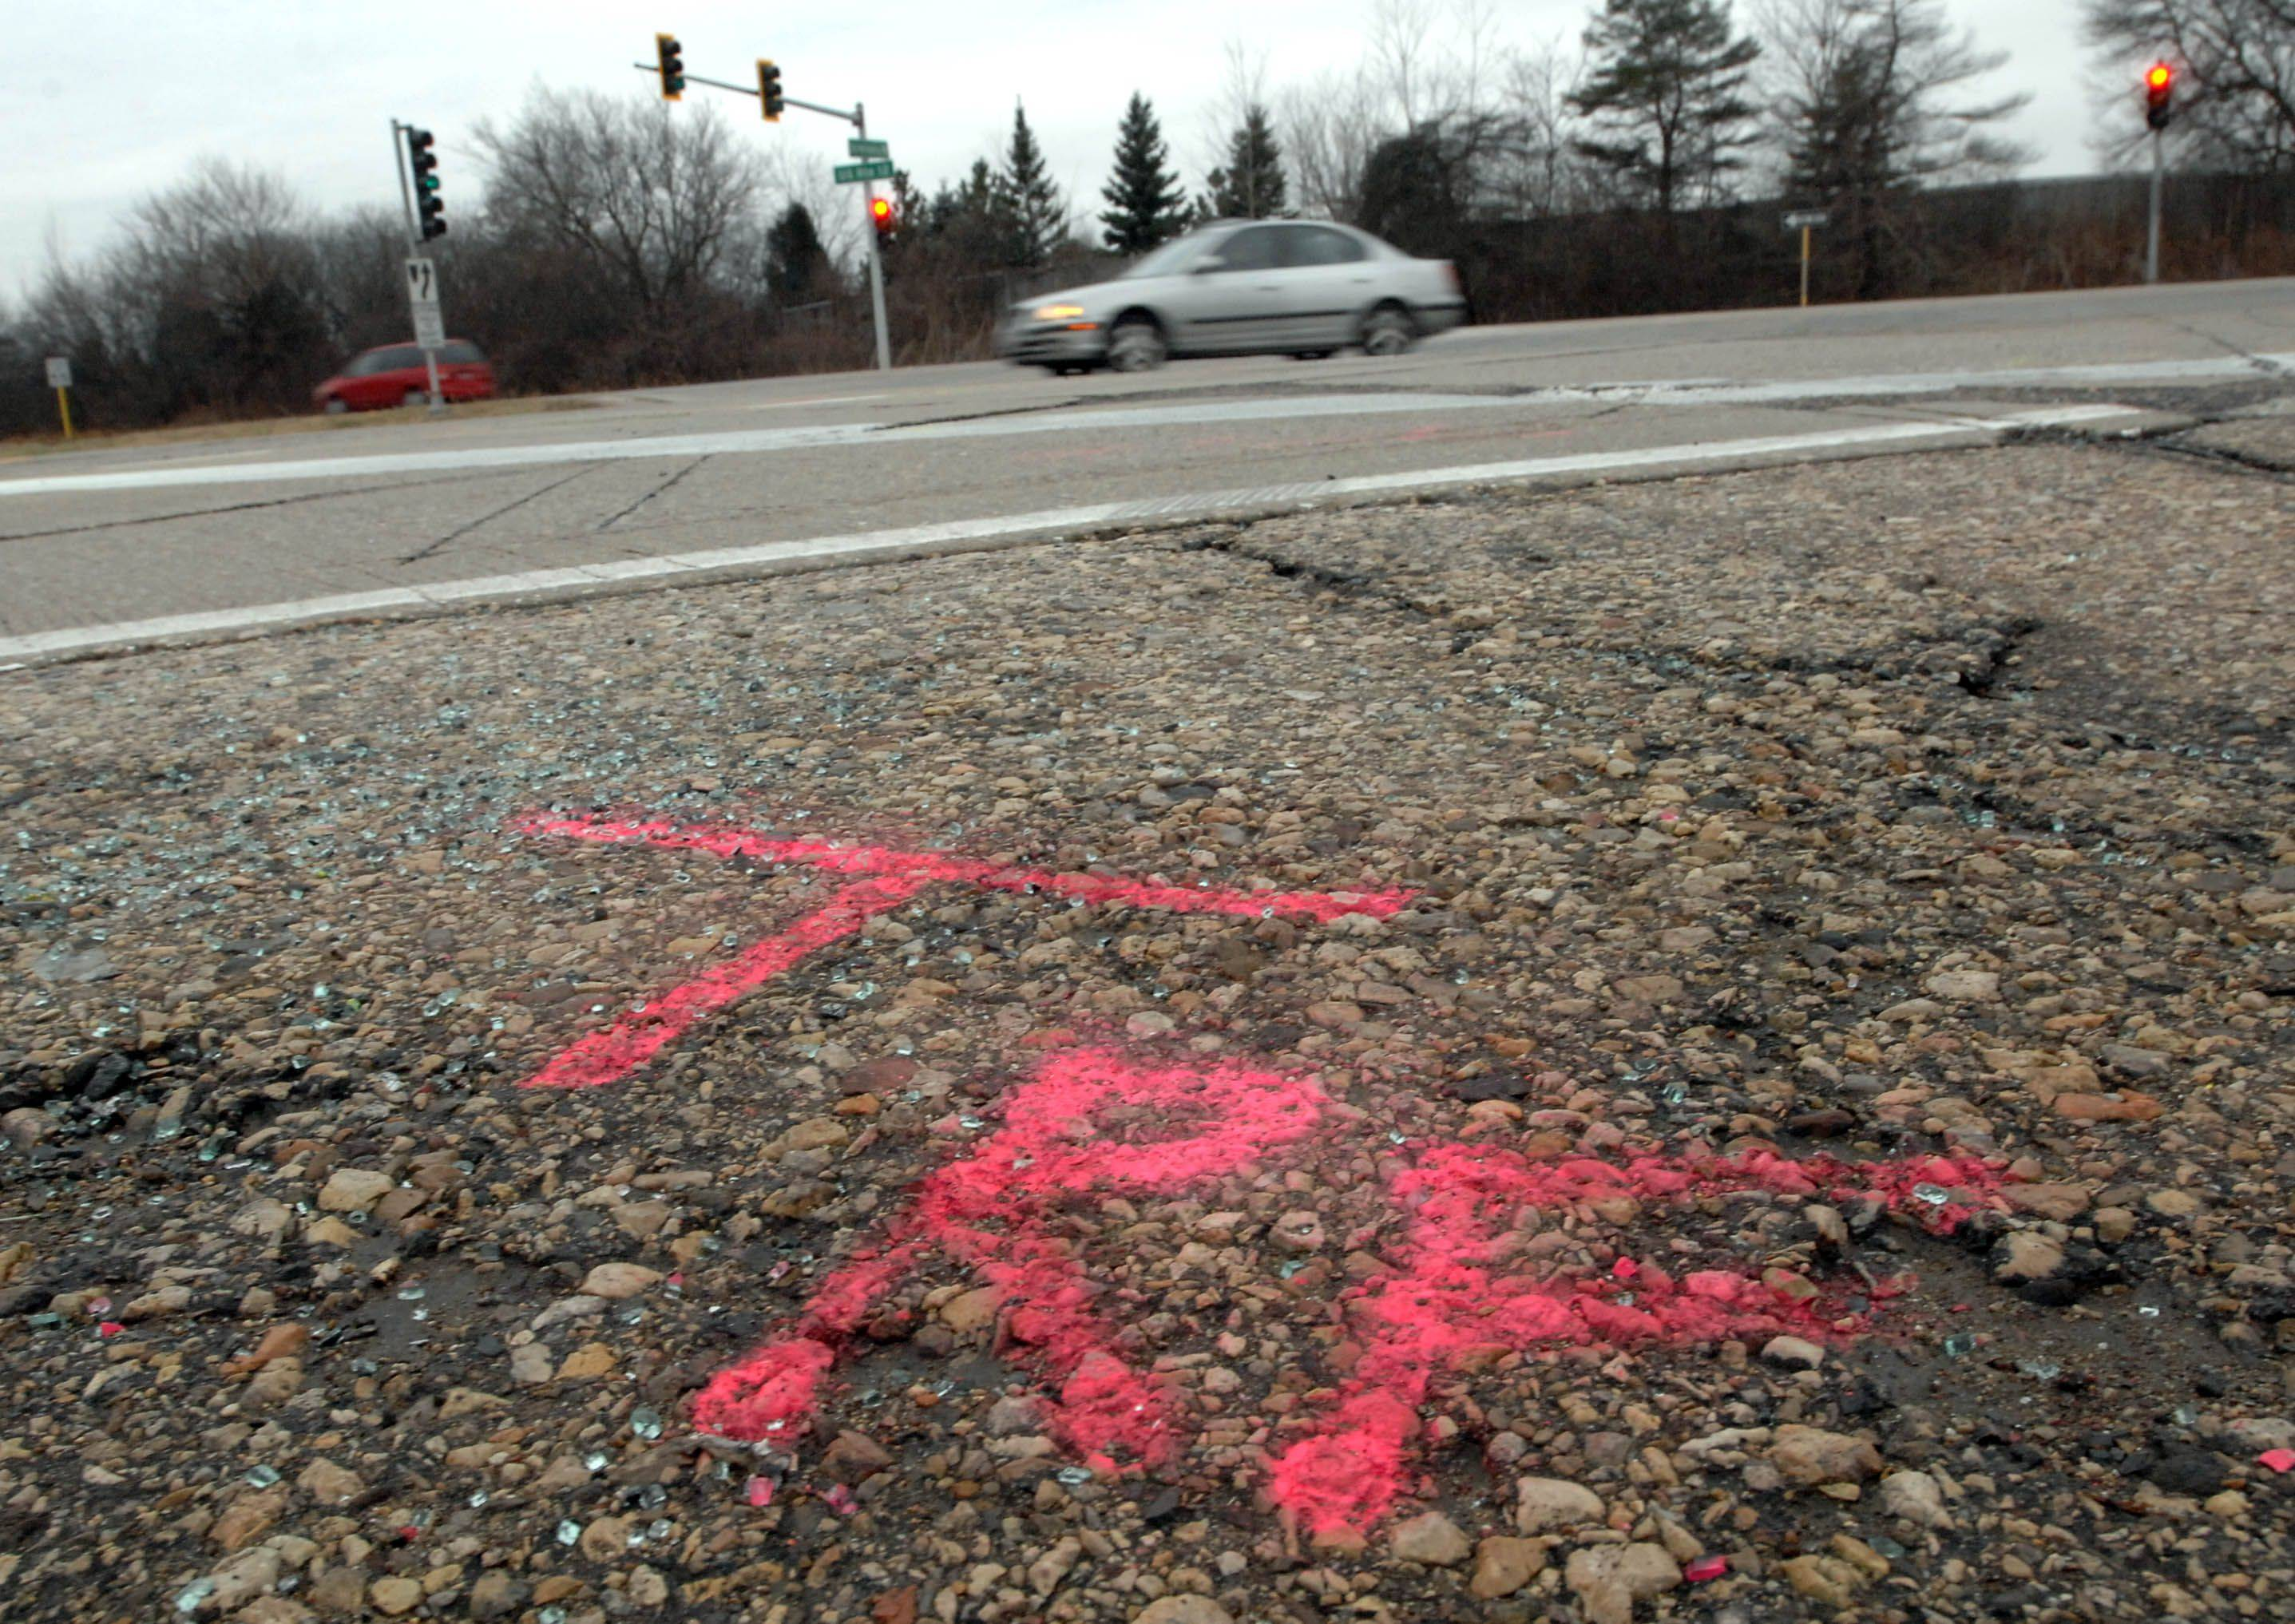 Police investigation markings at the intersection of Route 12 and Old McHenry Road near Lake Zurich where a 10-year-old child was killed Monday evening.